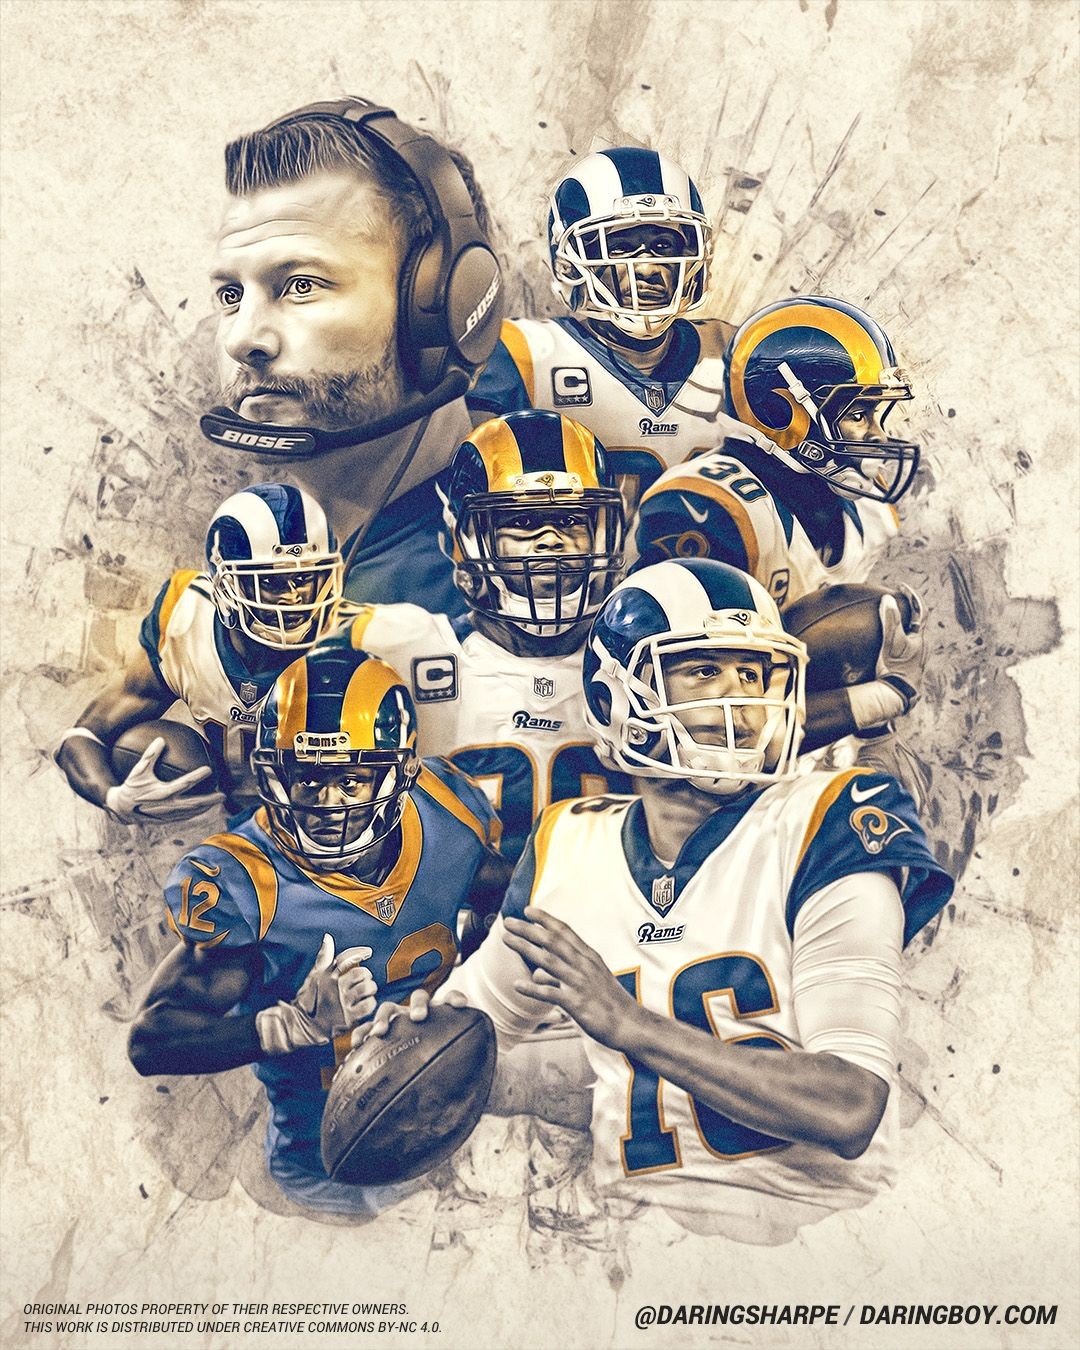 2019 Los Angeles Rams La Rams Football Los Angeles Rams Nfl Football Art